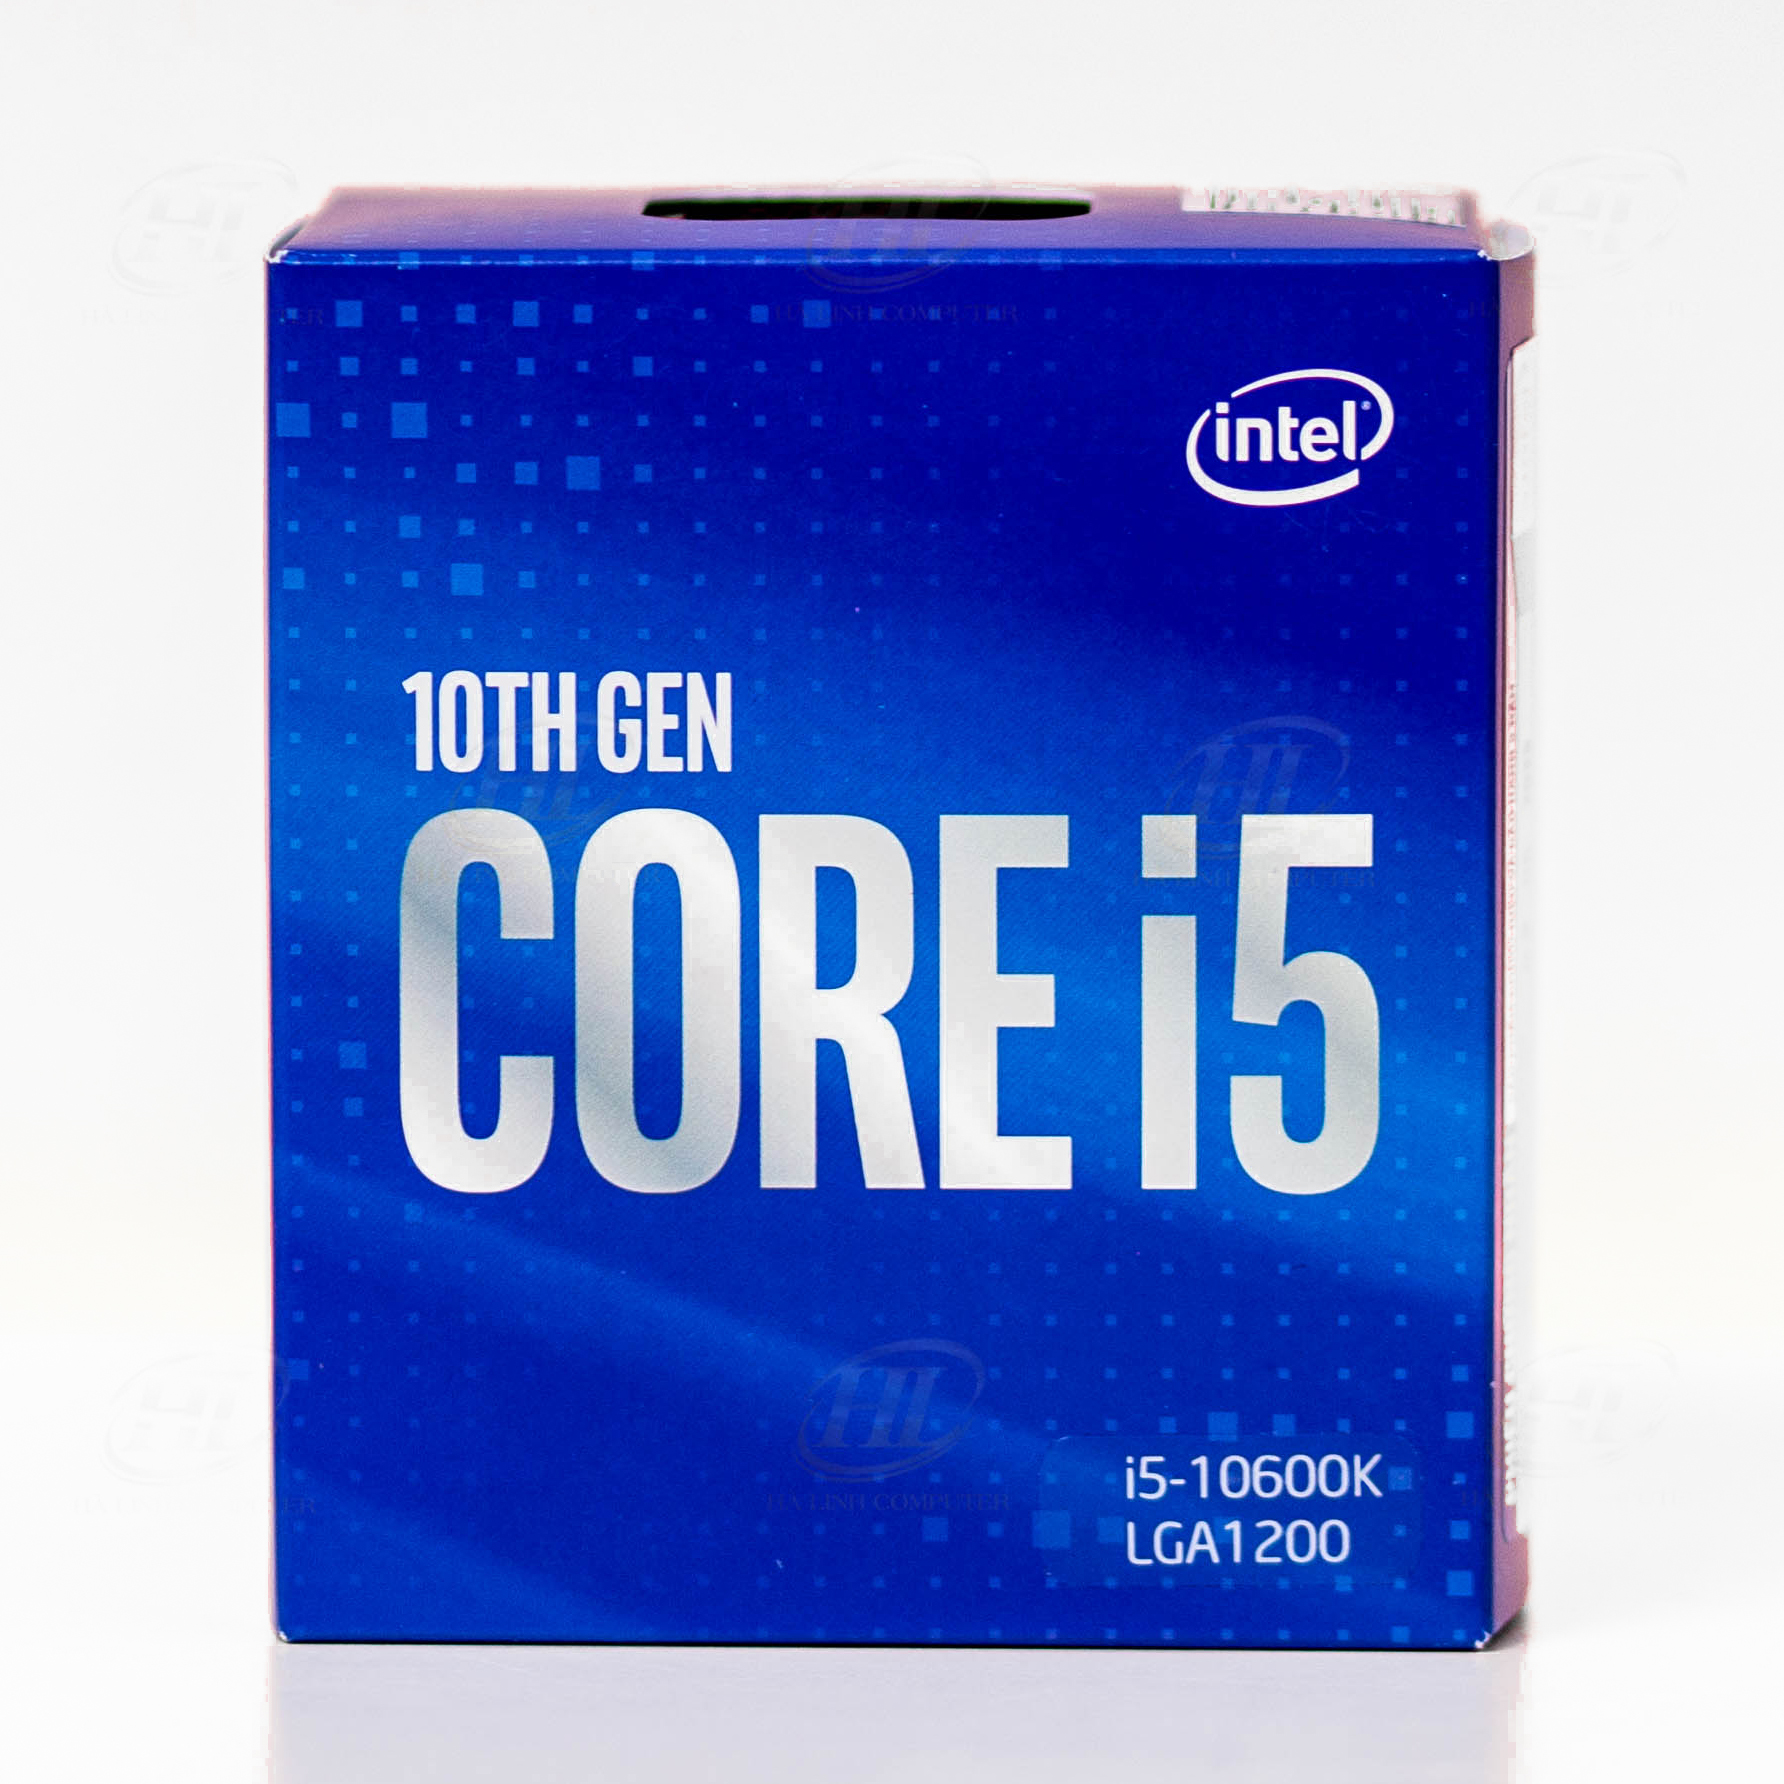 CPU Intel Core i5 10600K (4.1 GHz turbo up to 4.8 GHz, 6 core 12 Threads , 12MB Cache, 125W)